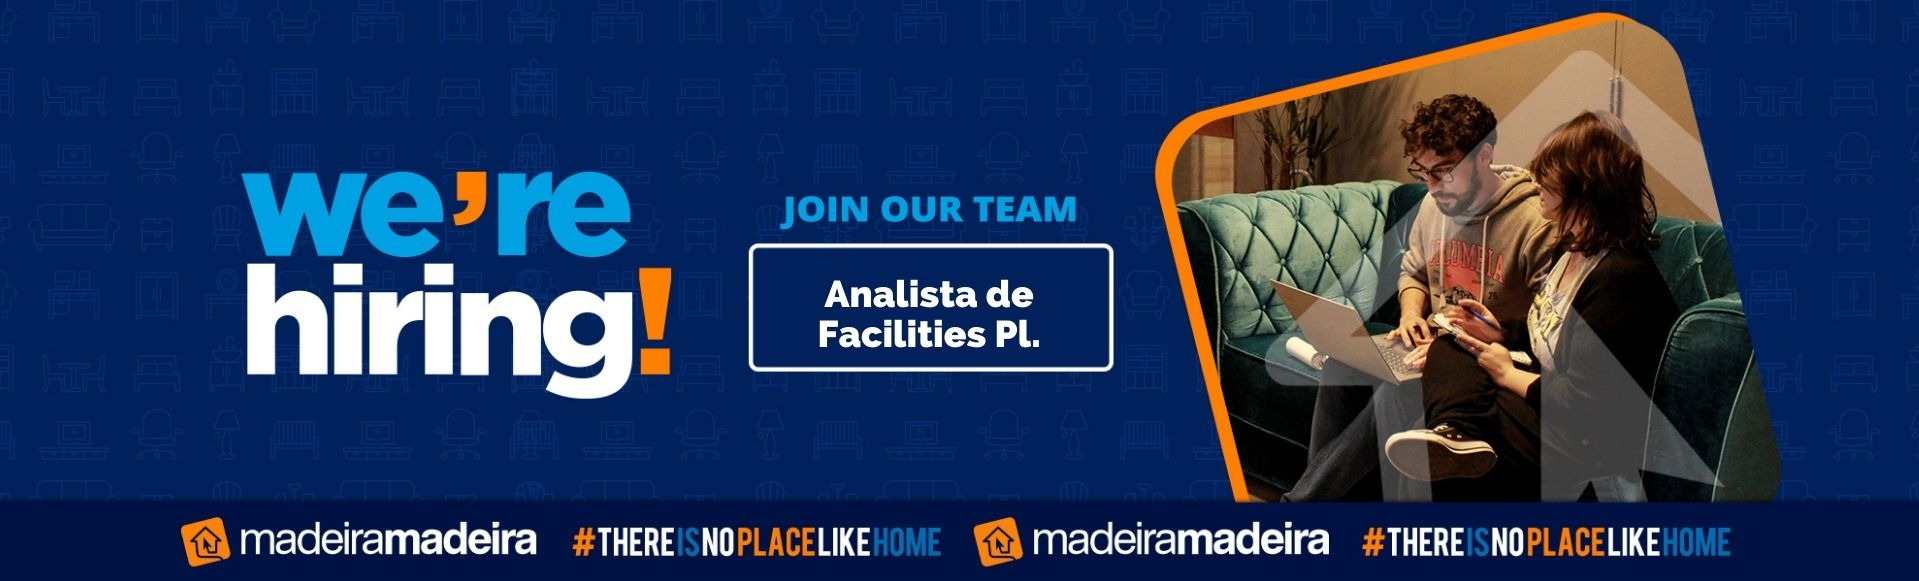 Analista de Facilities